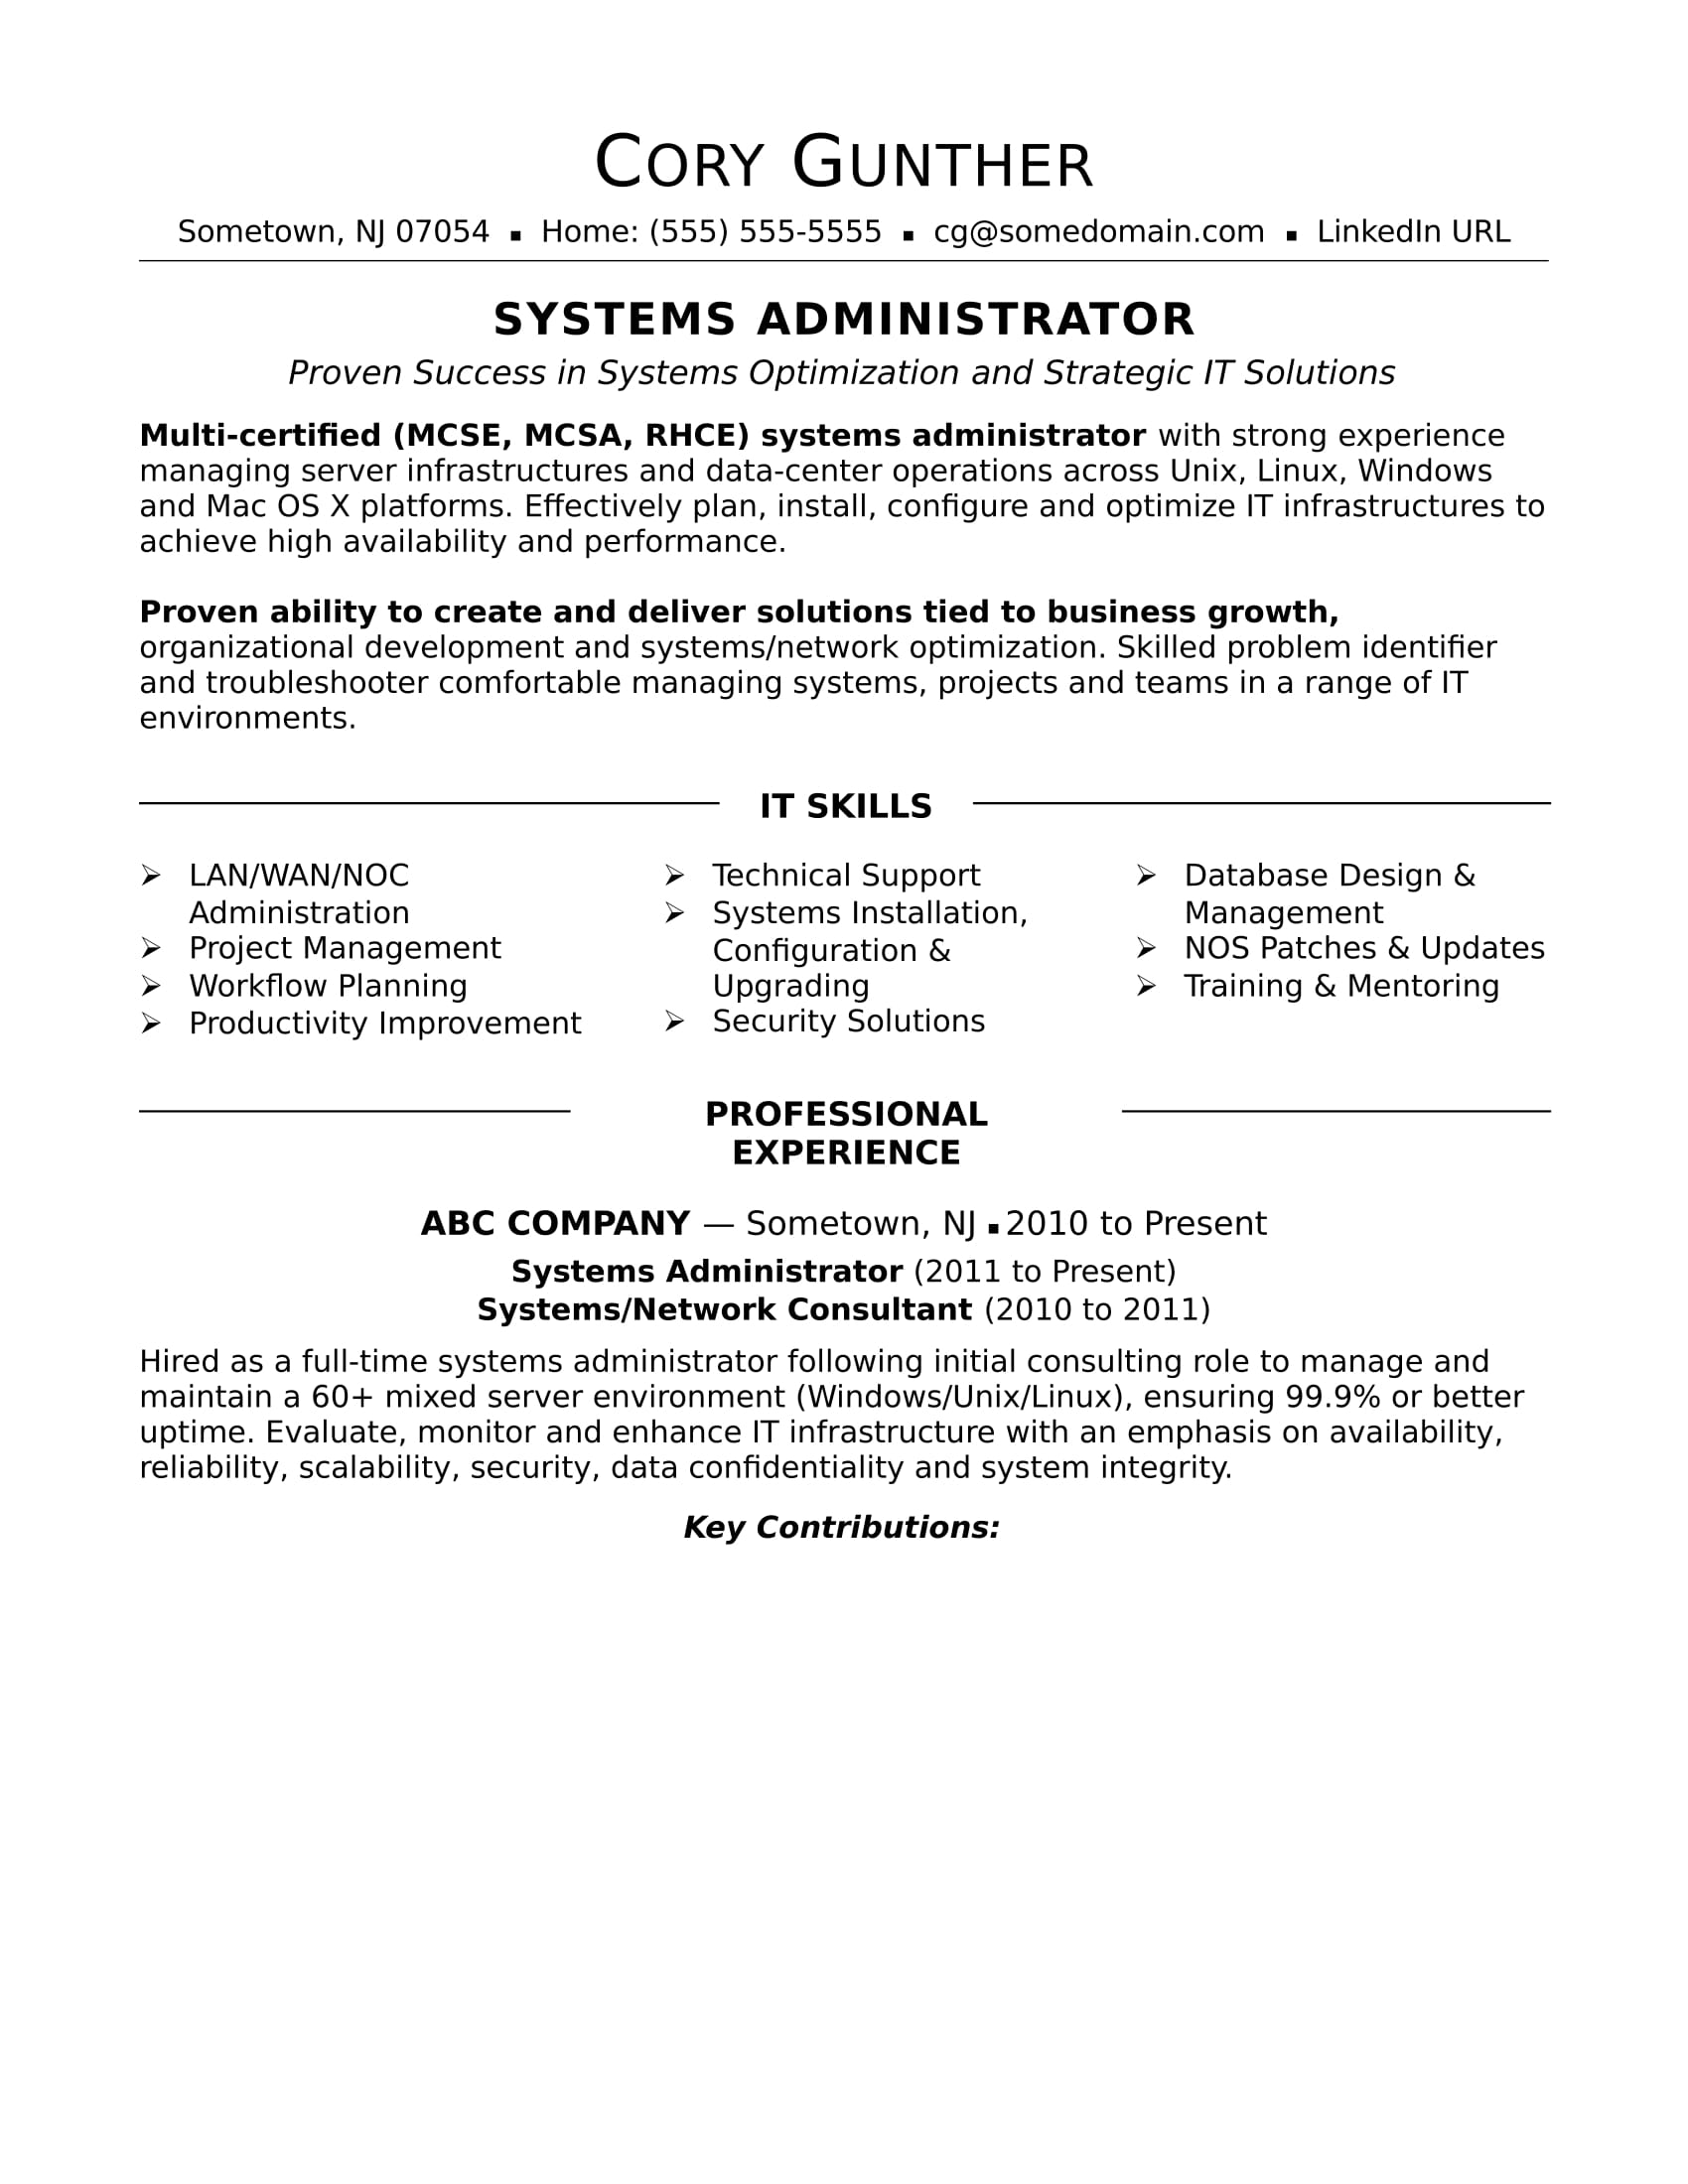 Sample Resume For An Experienced Systems Administrator  Example Of An Resume